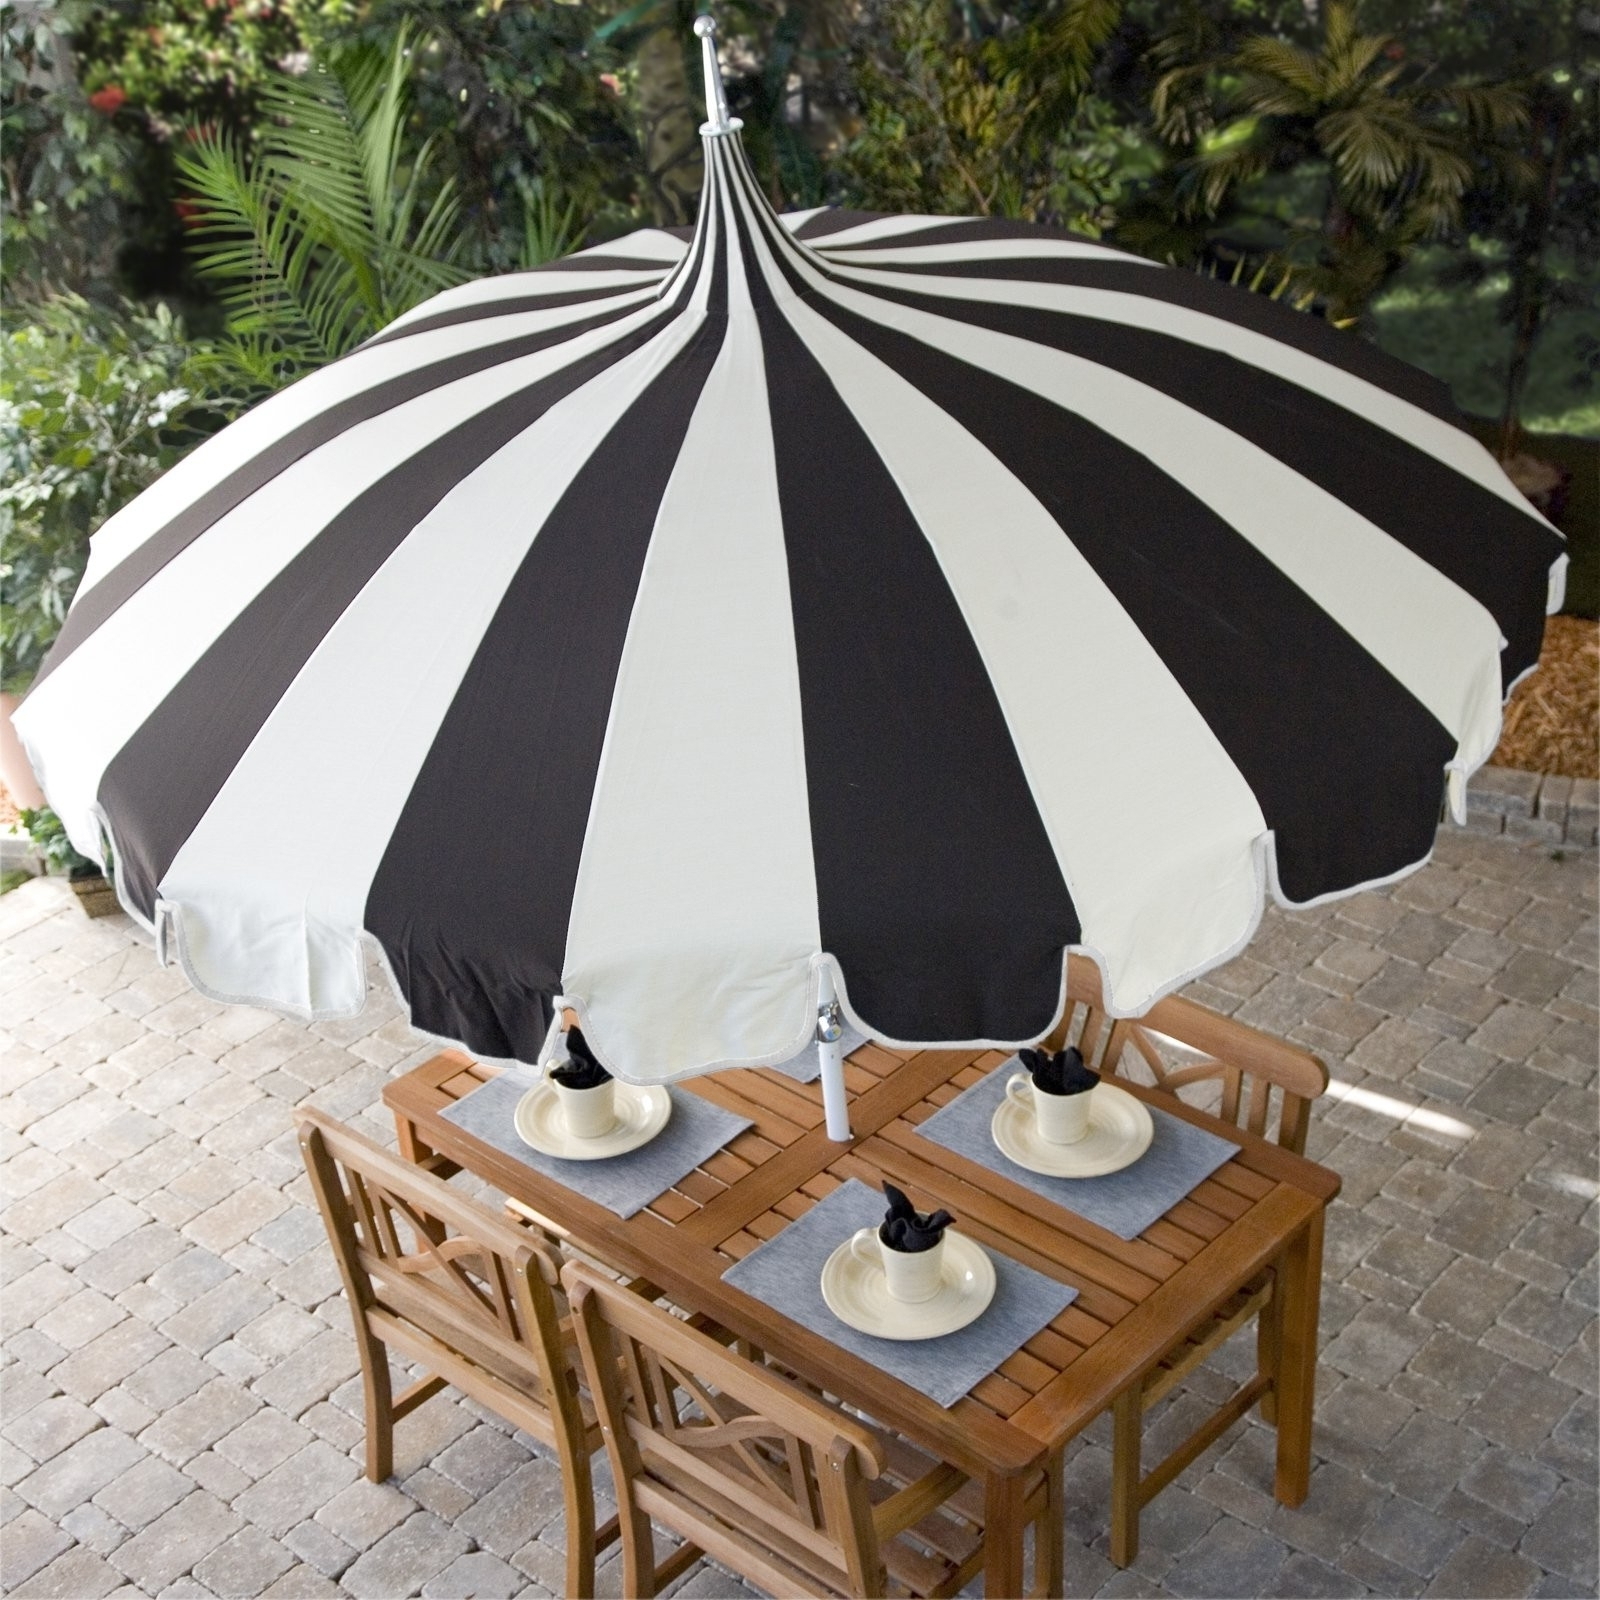 Striped Sunbrella Patio Umbrellas For Most Recently Released Pagoda Umbrella Sea Green Designs Llc Of Striped Patio Umbrella (View 12 of 20)